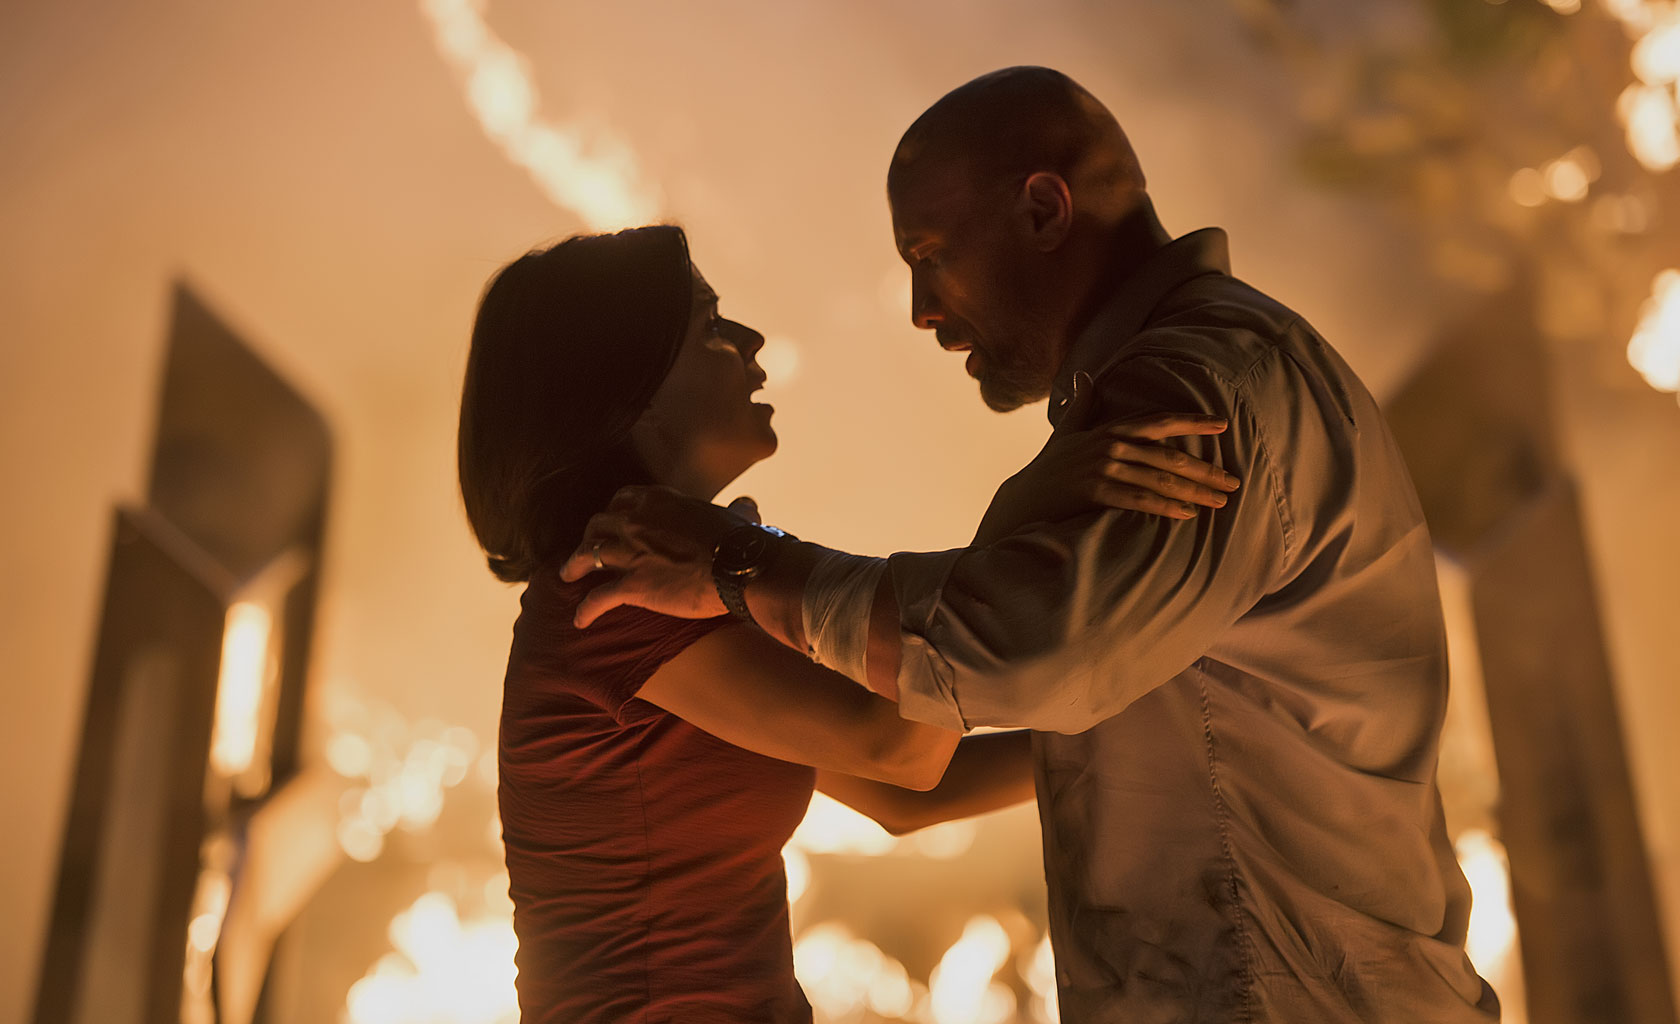 Skyscraper movie image with Dwayne 'The Rock' Johnson and Neve Campbell